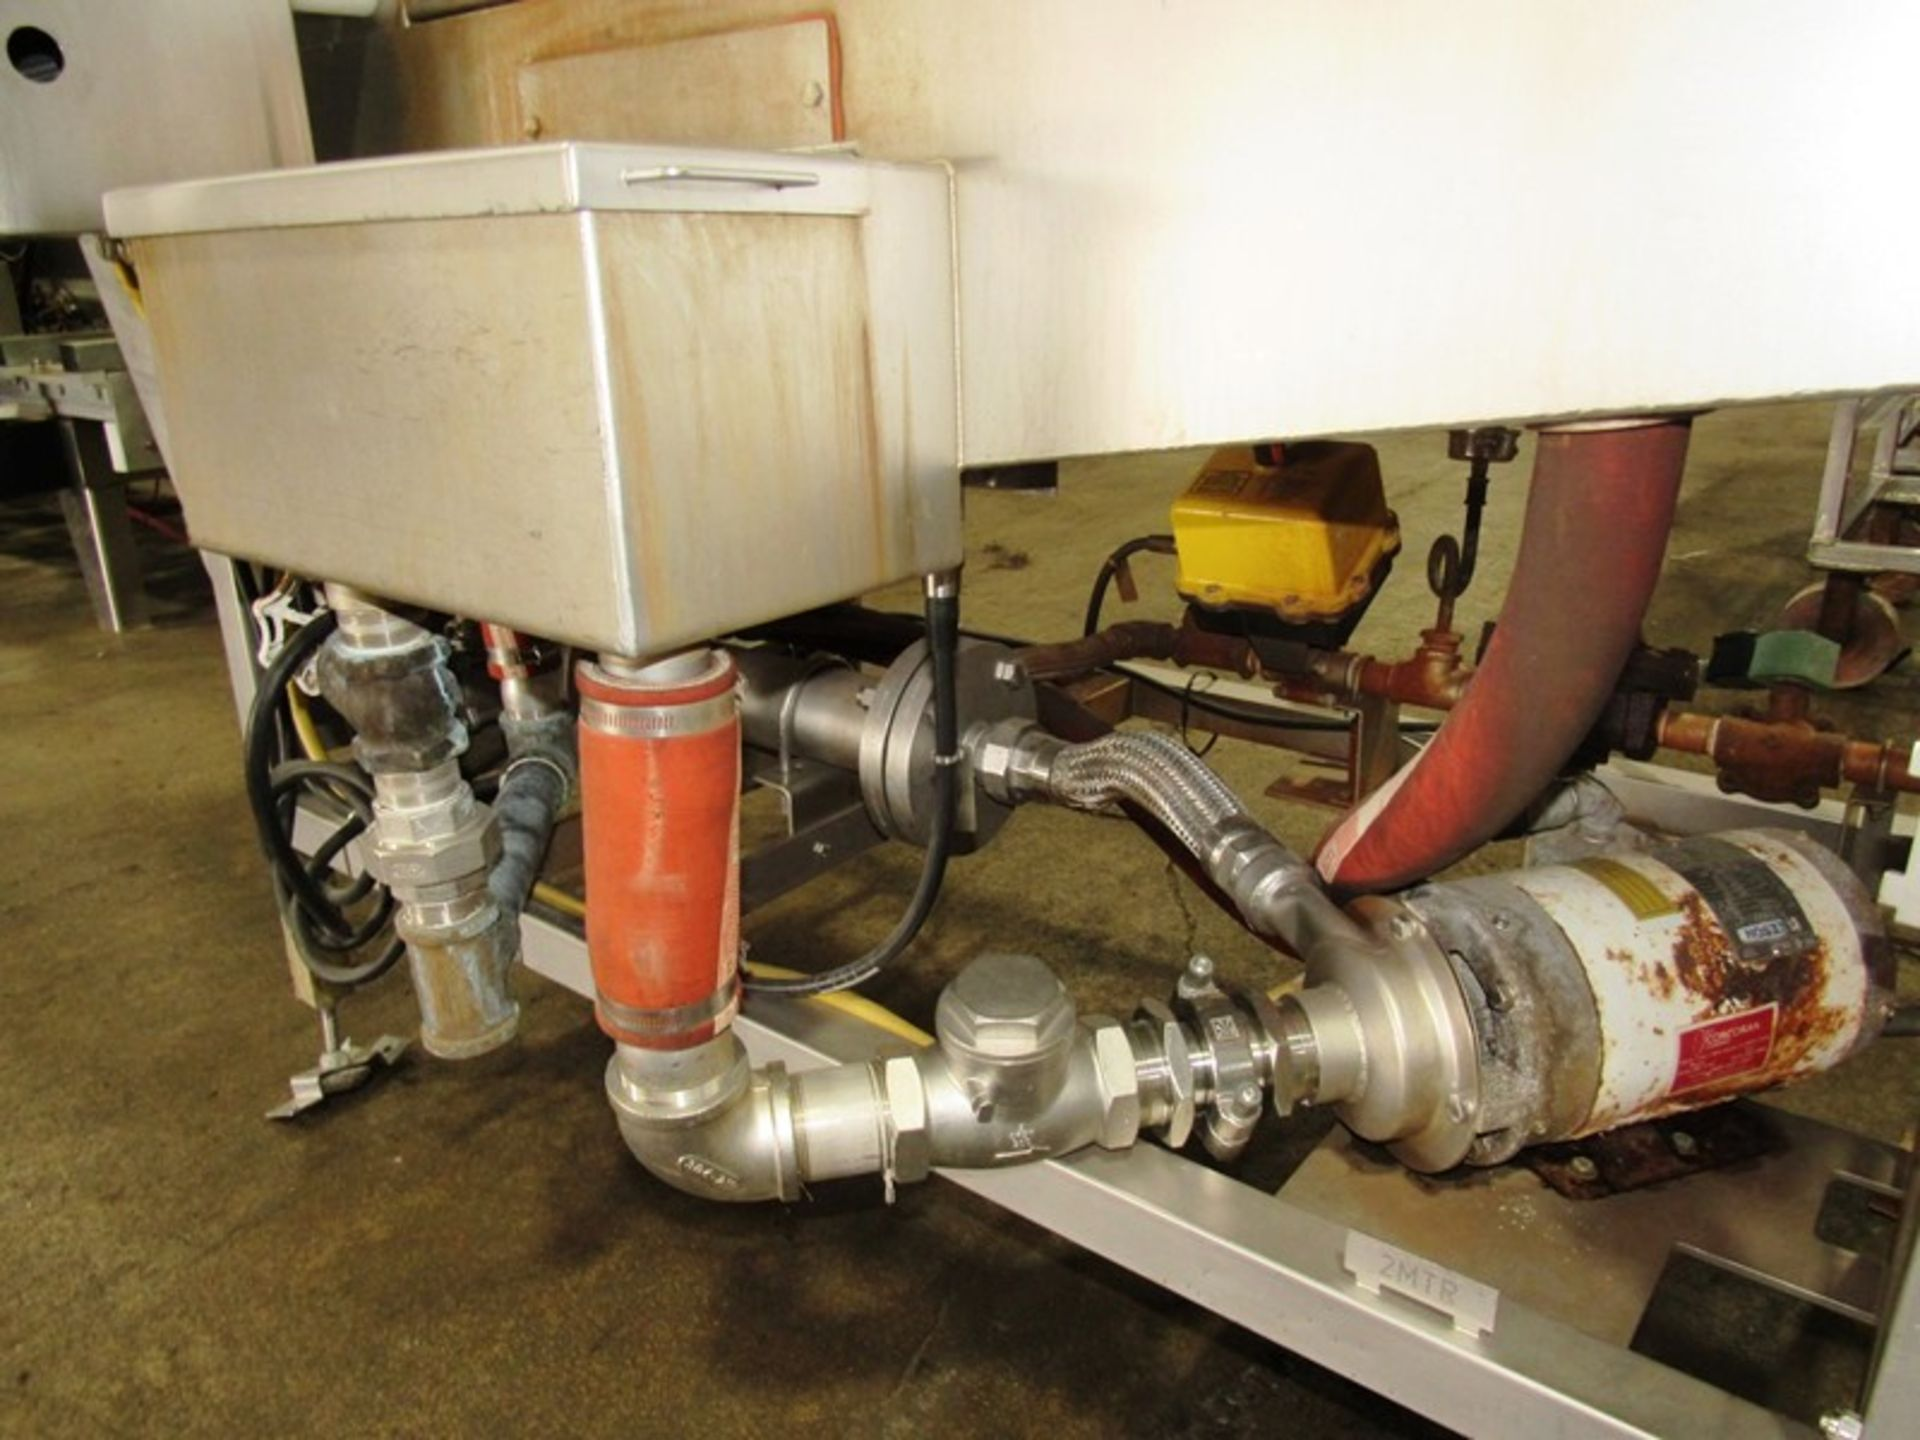 """Cryovac Mdl ST101 Steam/Hot Water Shrink Tunnel, 24"""" Wide X 18"""" Tall X 77"""" Long tunnel, 2 h.p. - Image 7 of 8"""